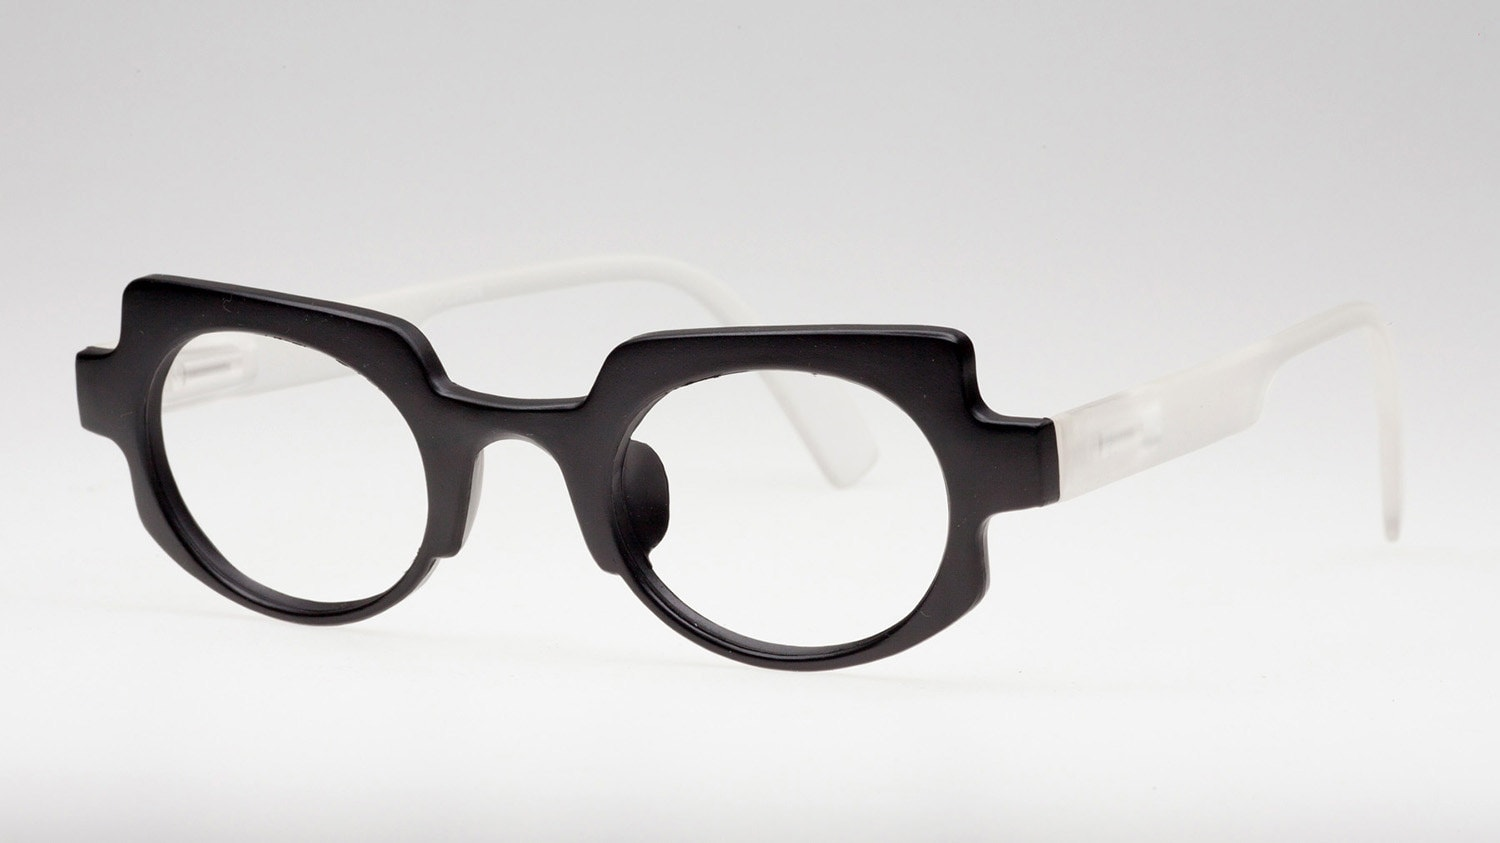 custom reading glasses optical eyeglasses matte black frame